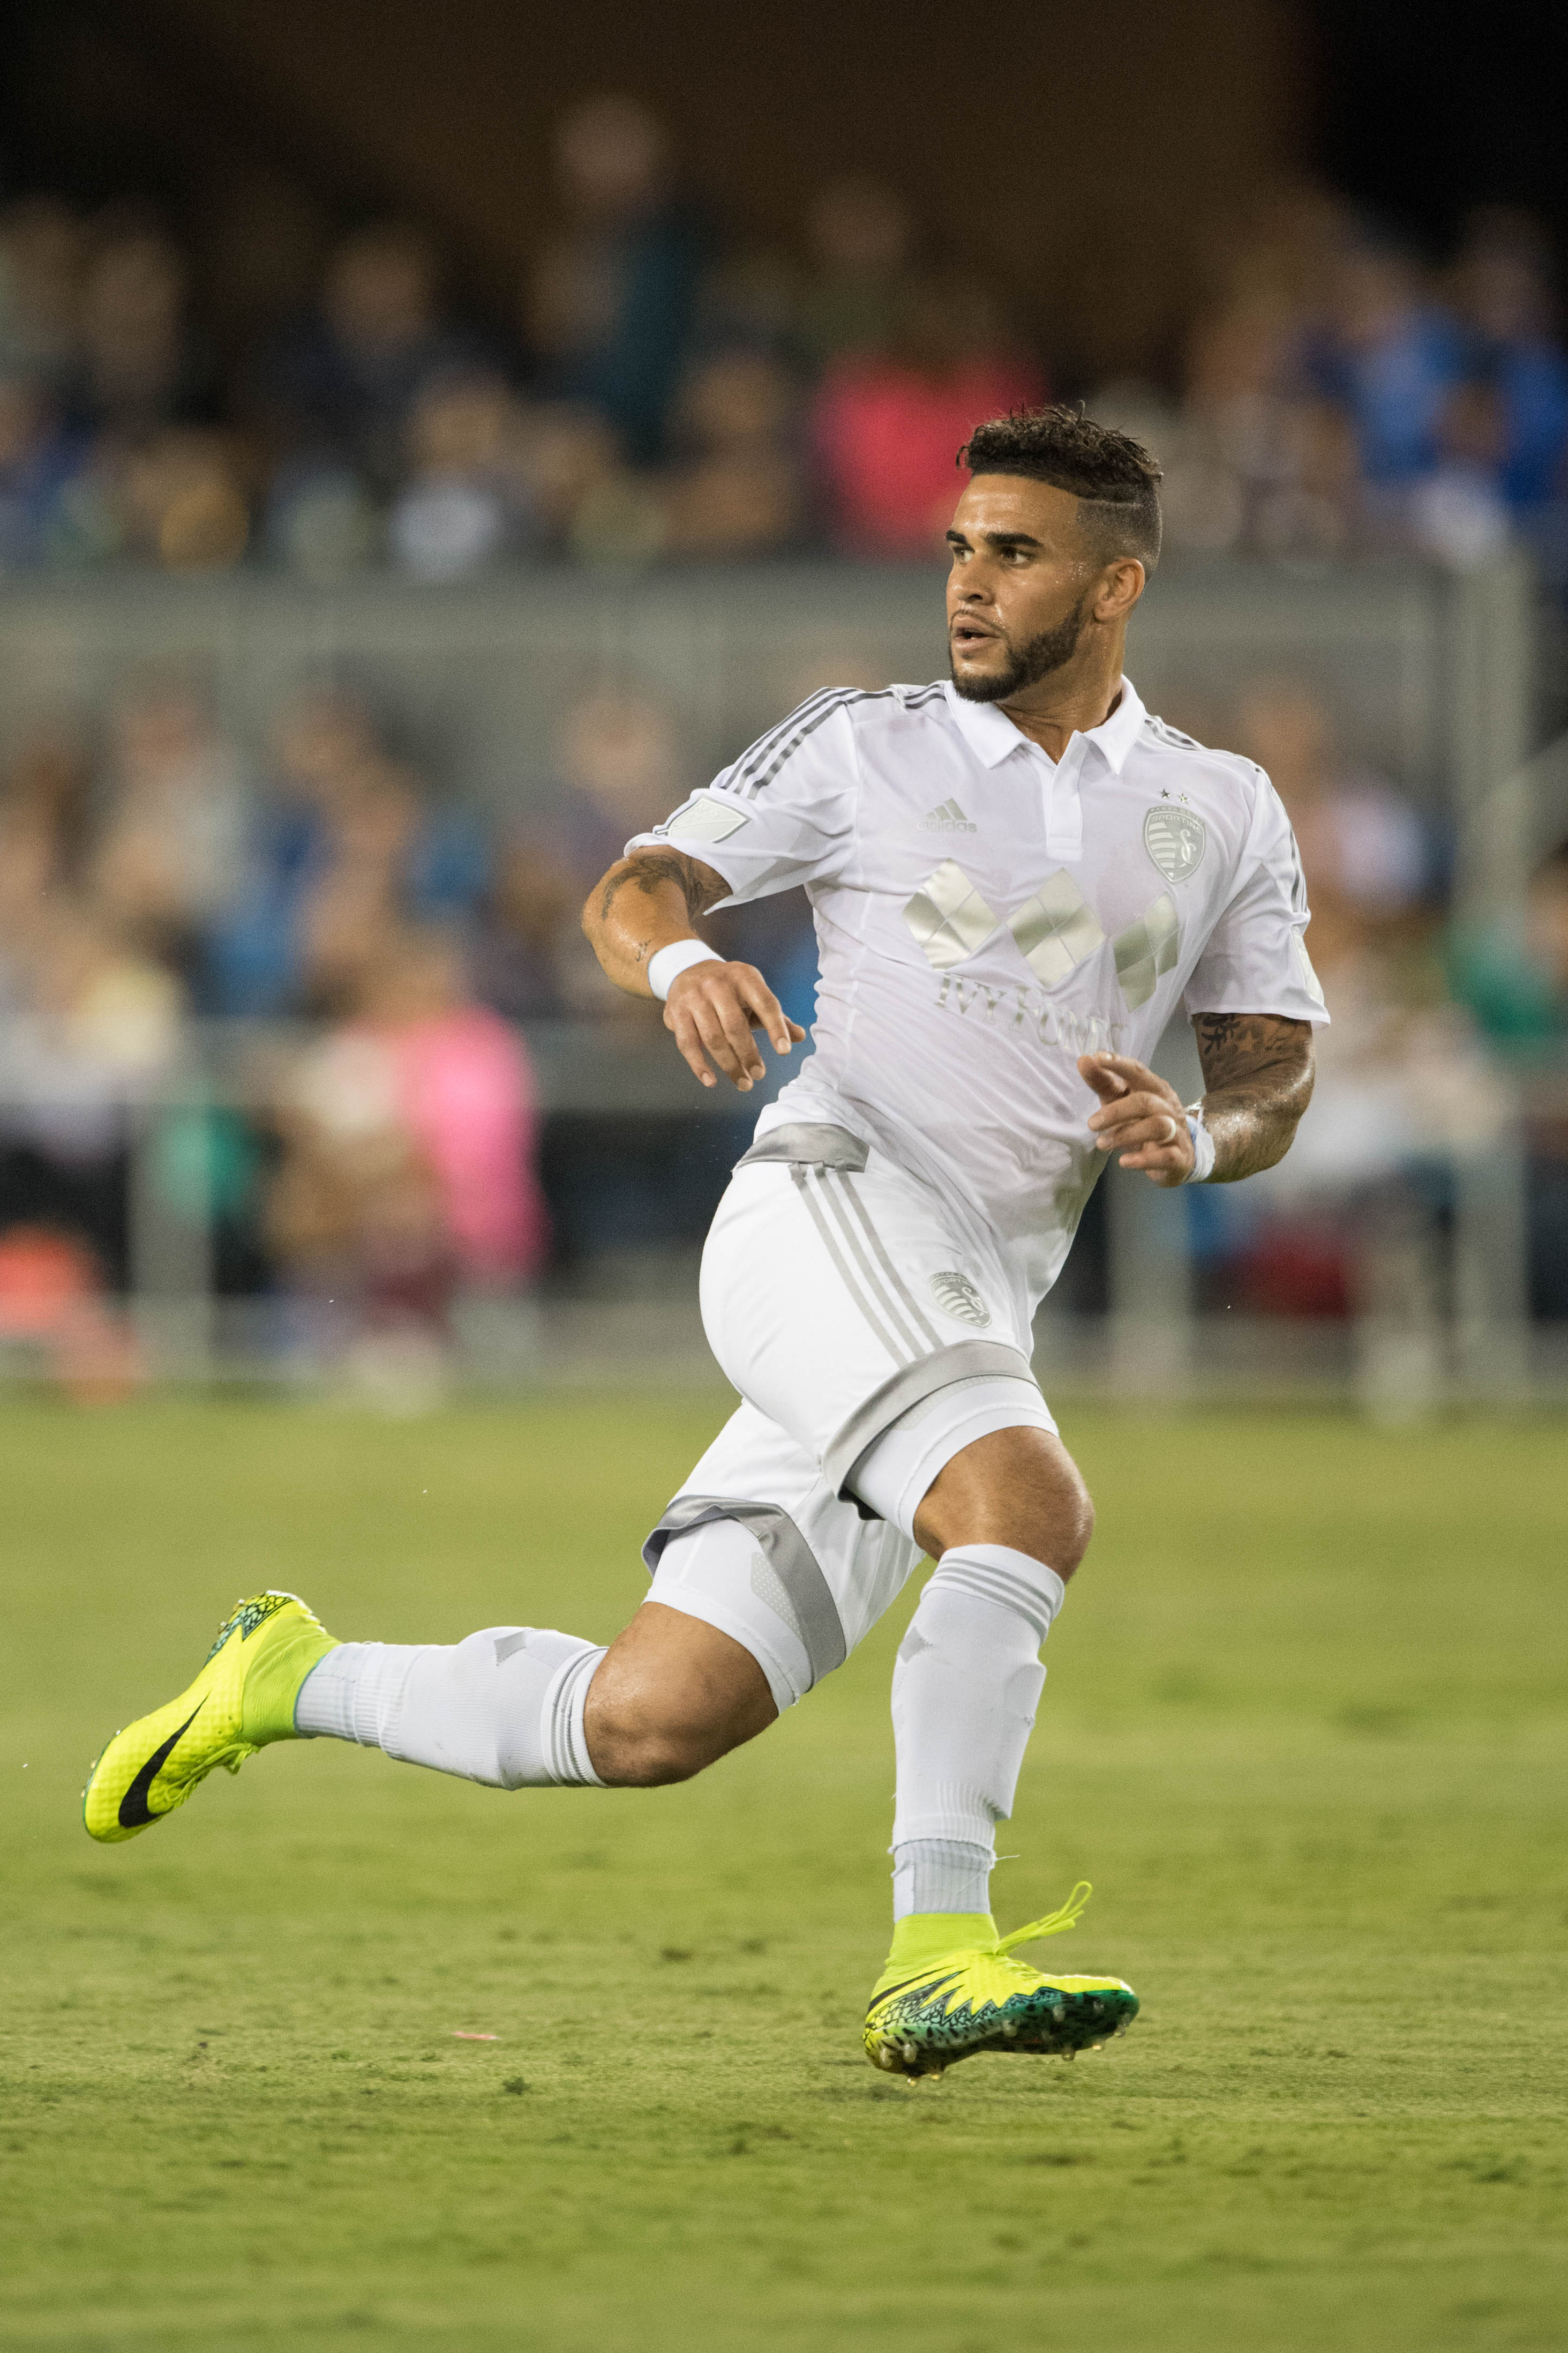 Sporting Kansas City striker Dom Dwyer was our panel's near-unanimous choice for Offensive Player of the Year